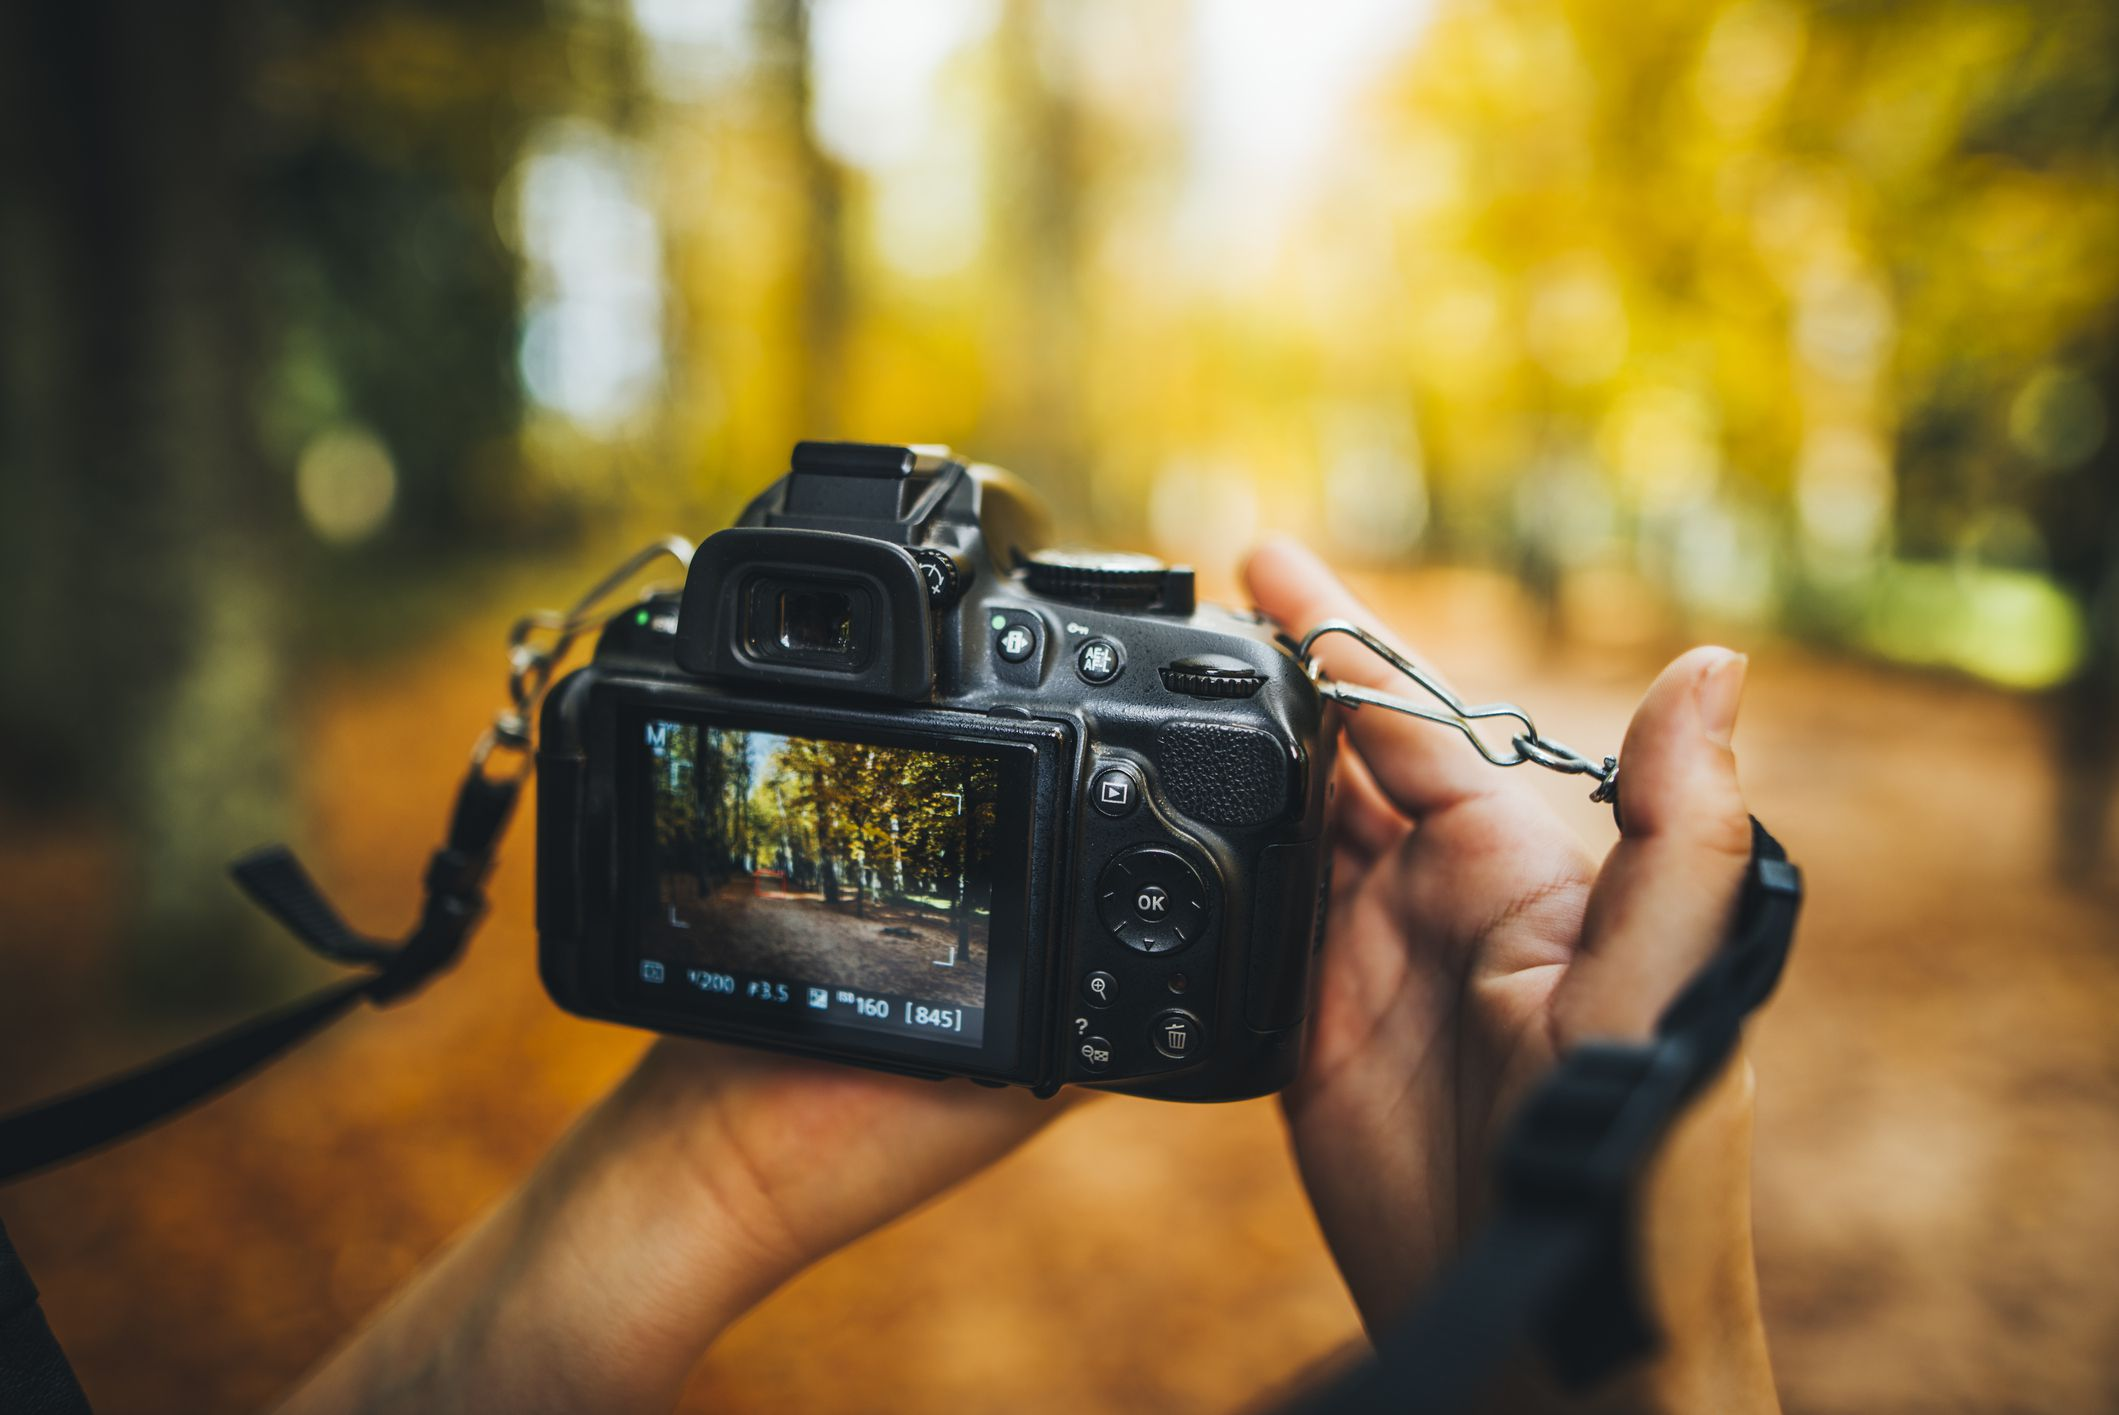 How To Fix My Camera Using Battery Too Fast